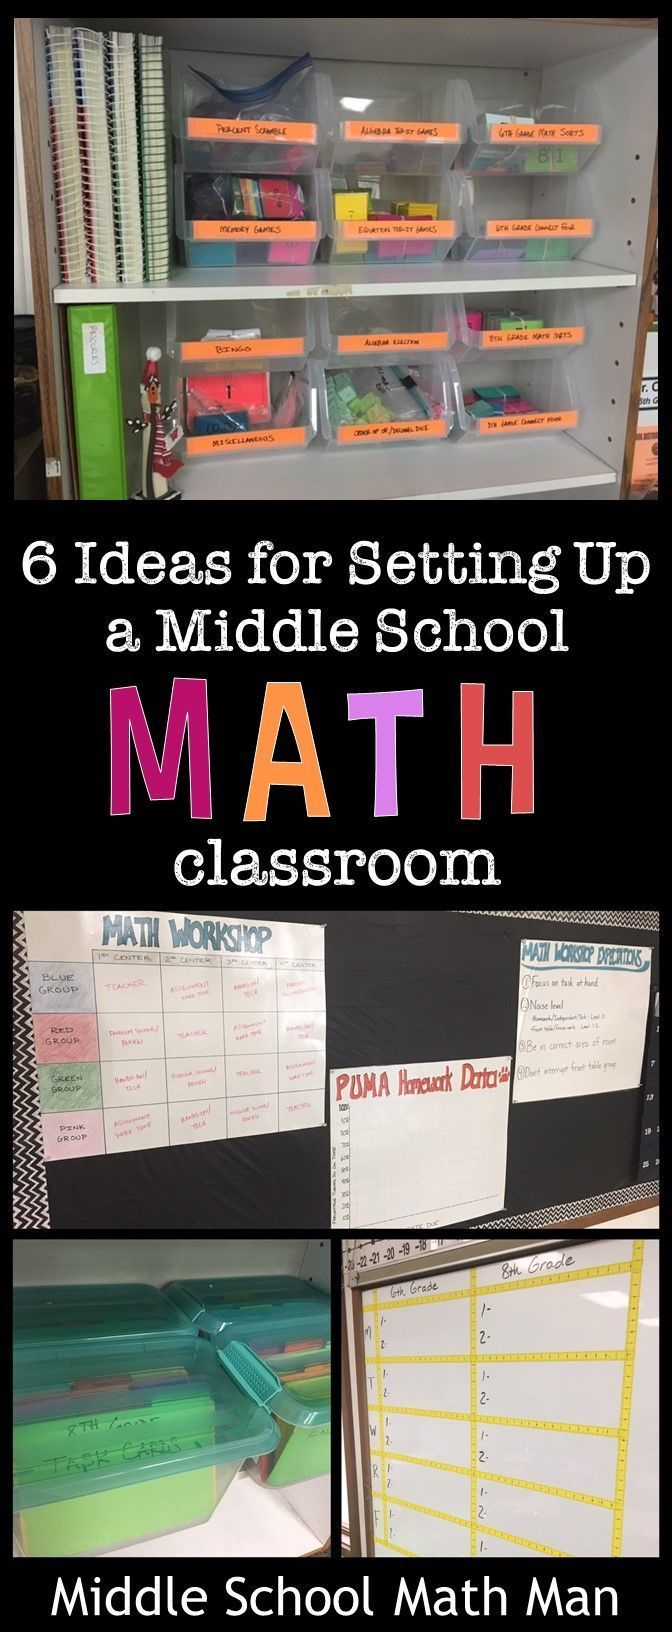 This blog post gives 6 creative ideas to help set up and organize the  middle school